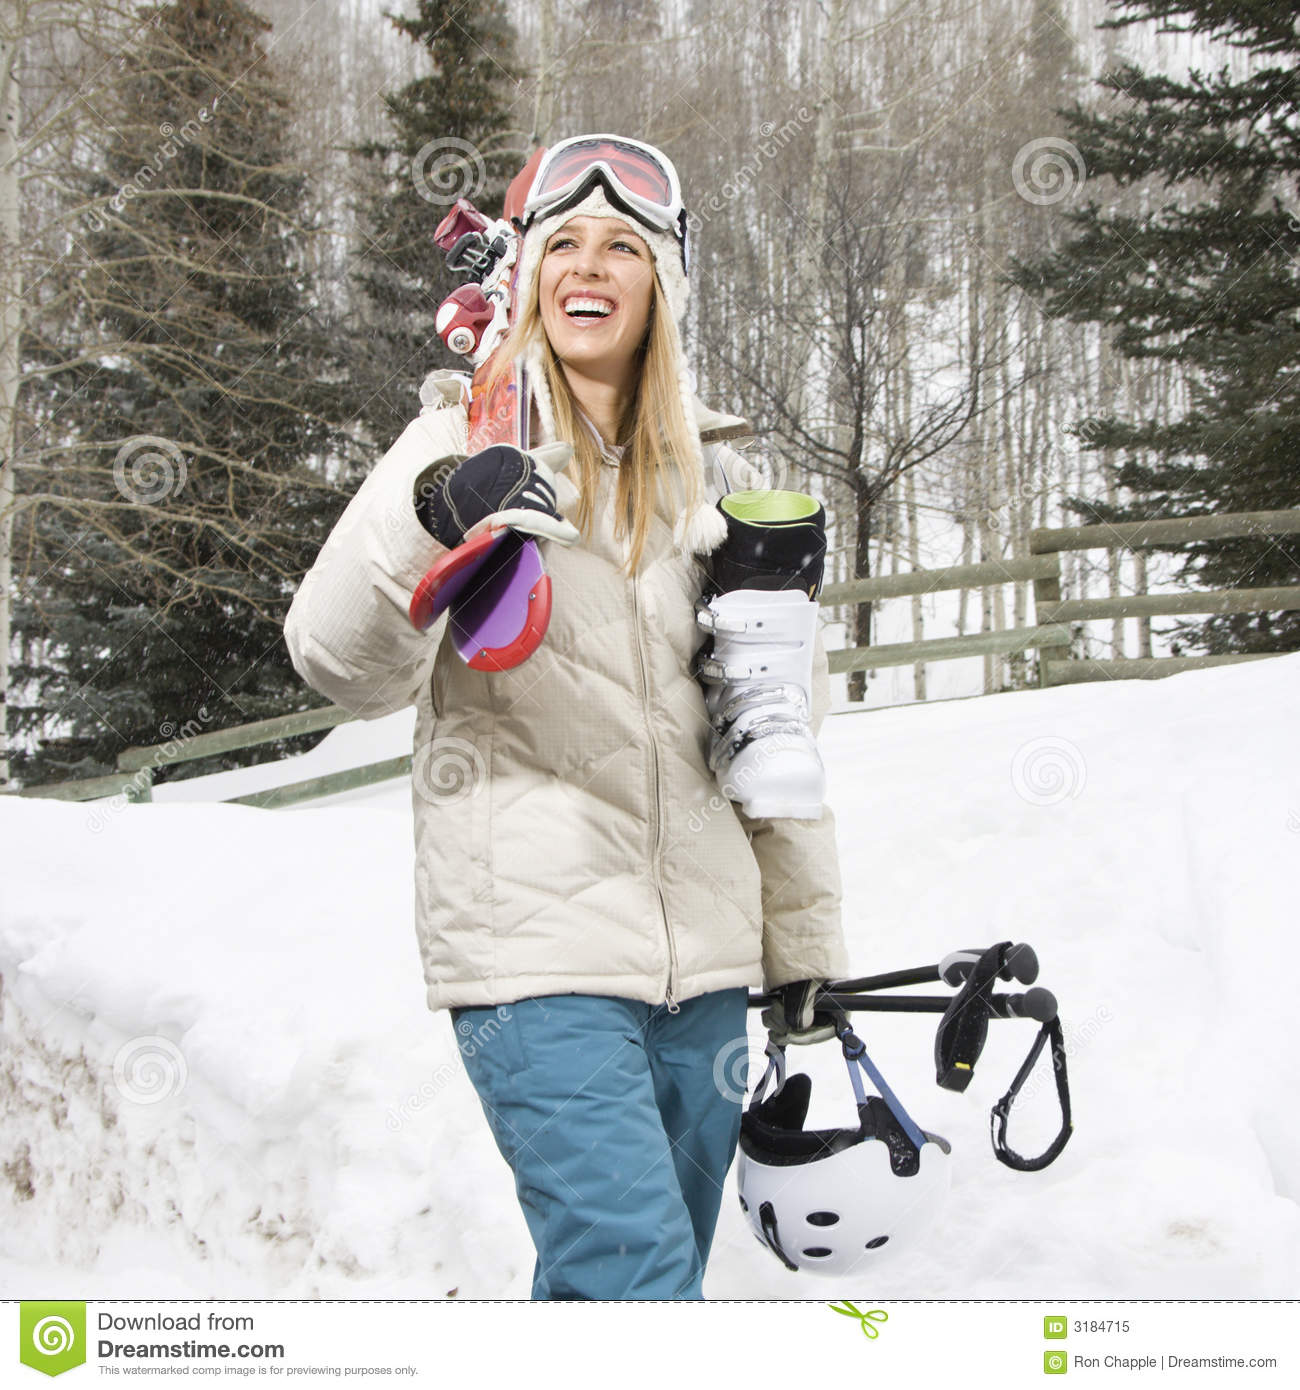 Woman carrying ski gear.